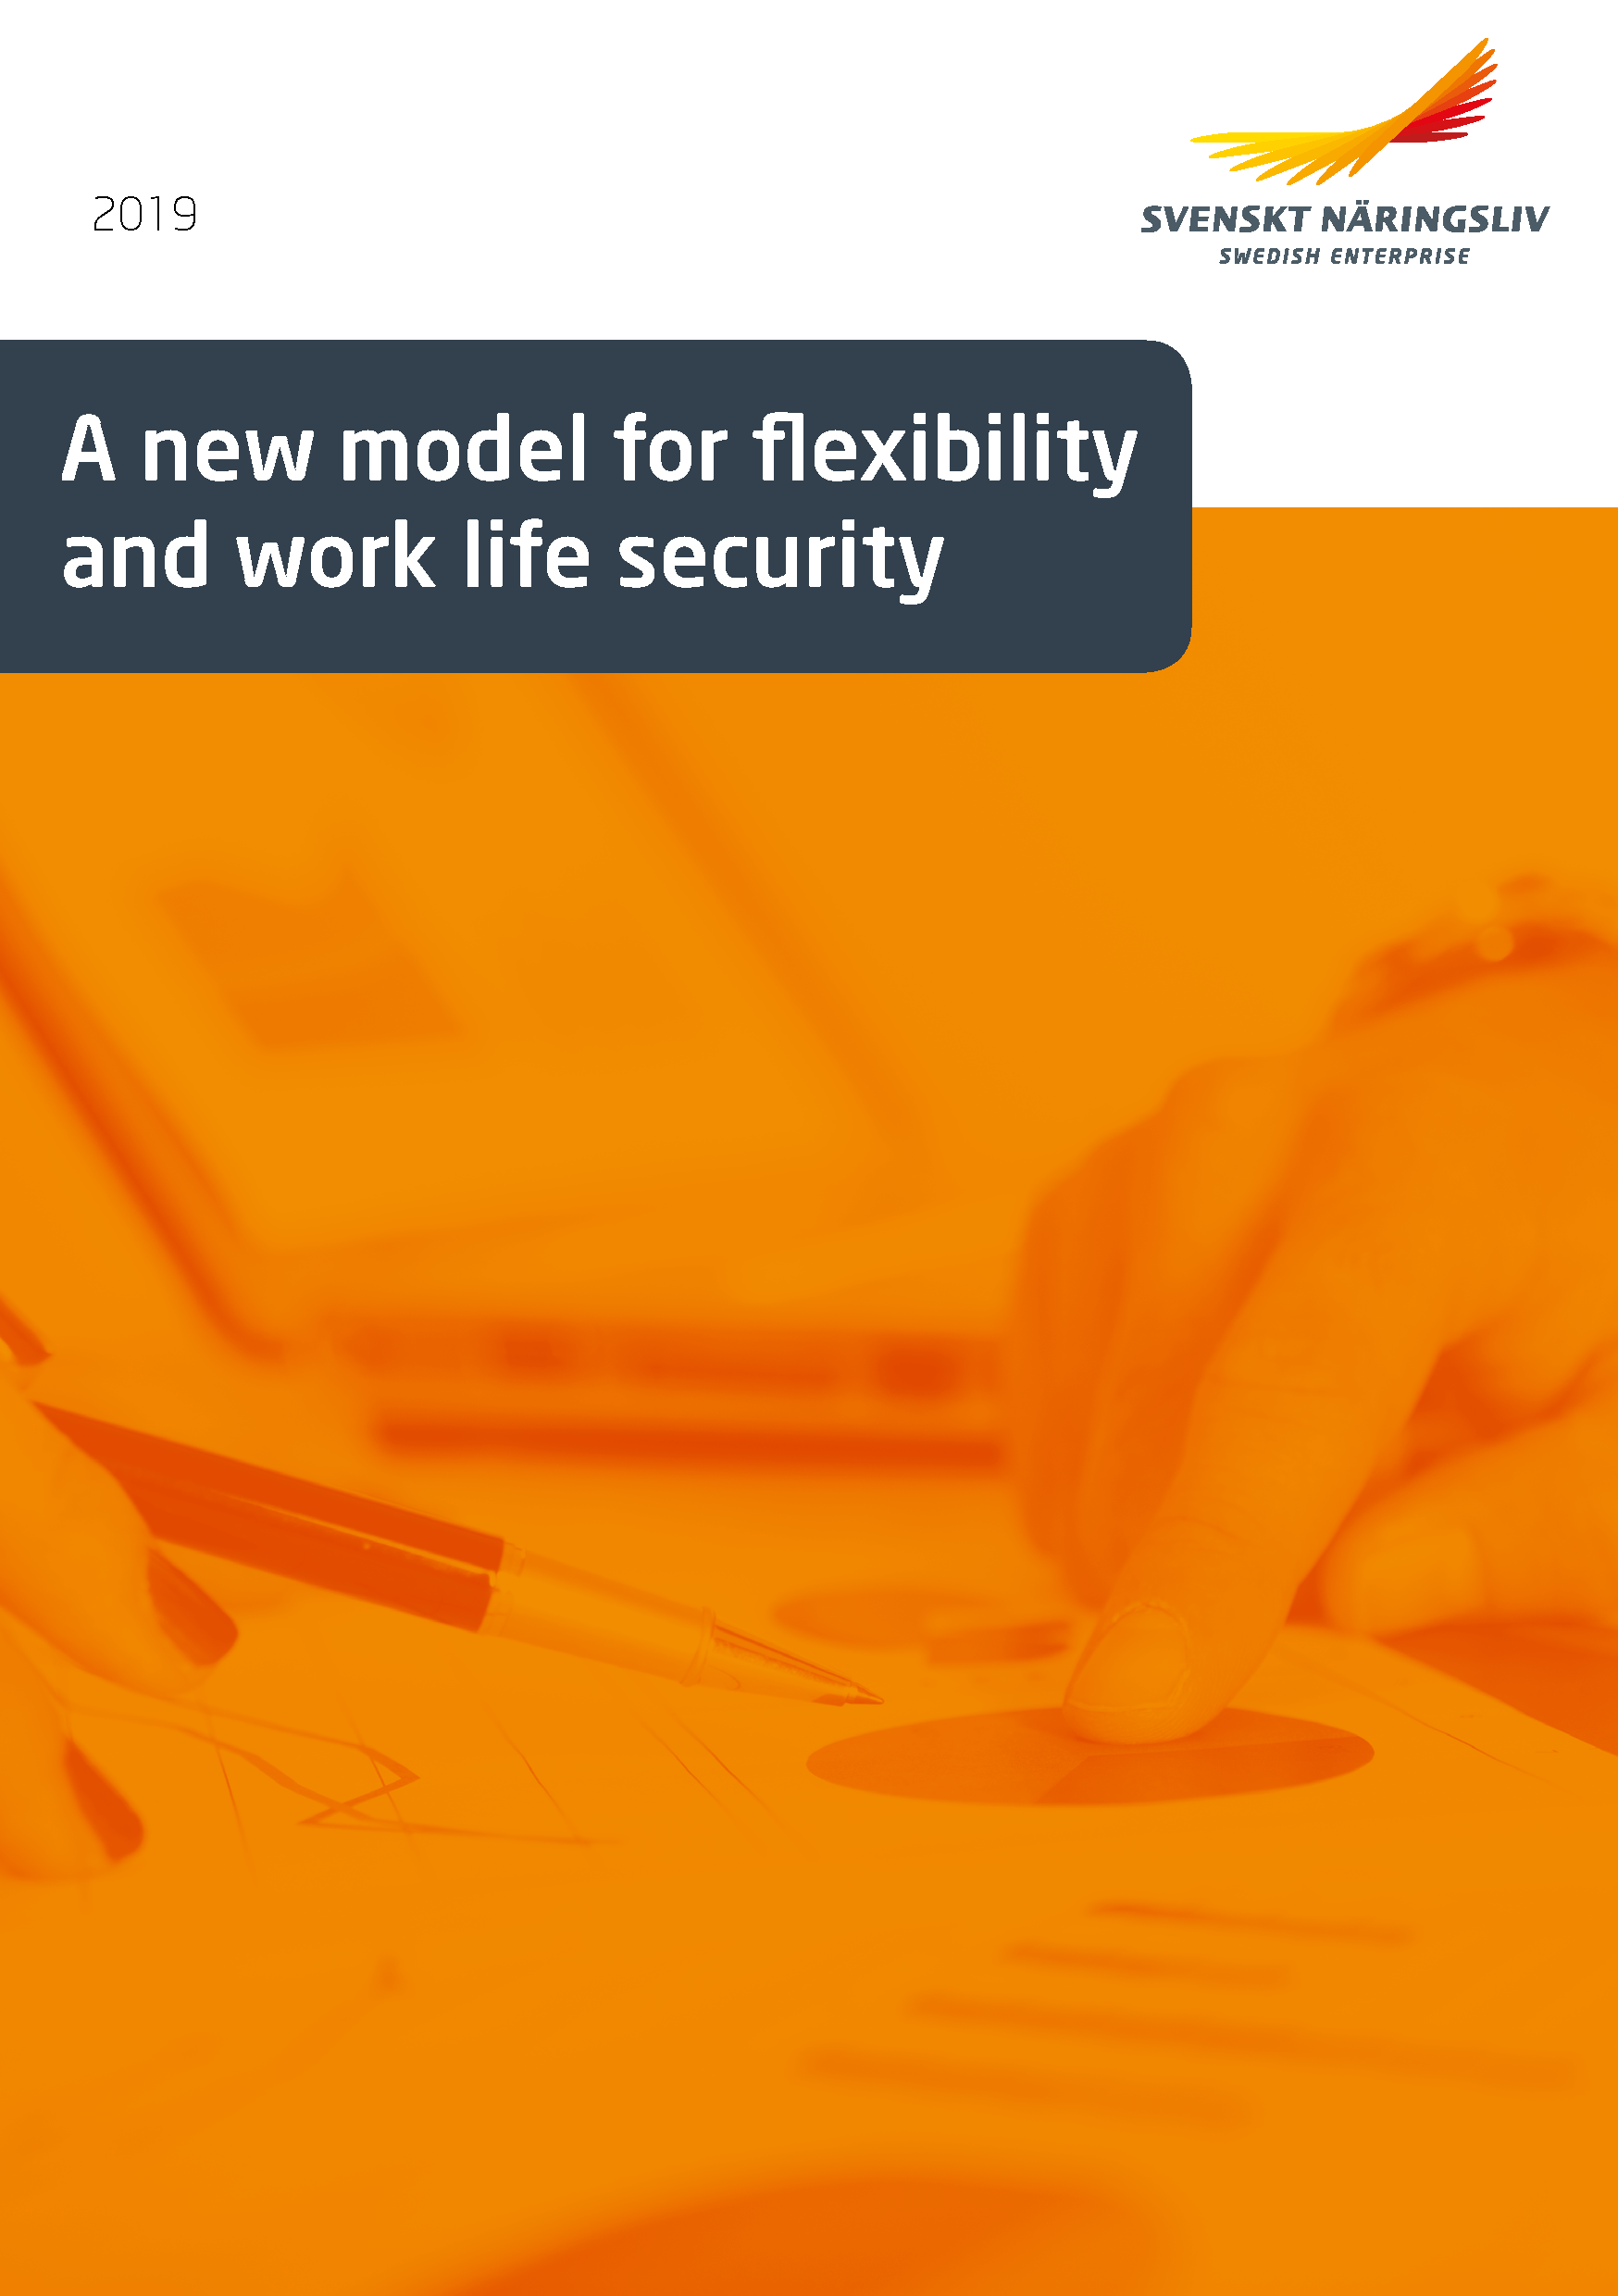 A new model for flexibility and work life security